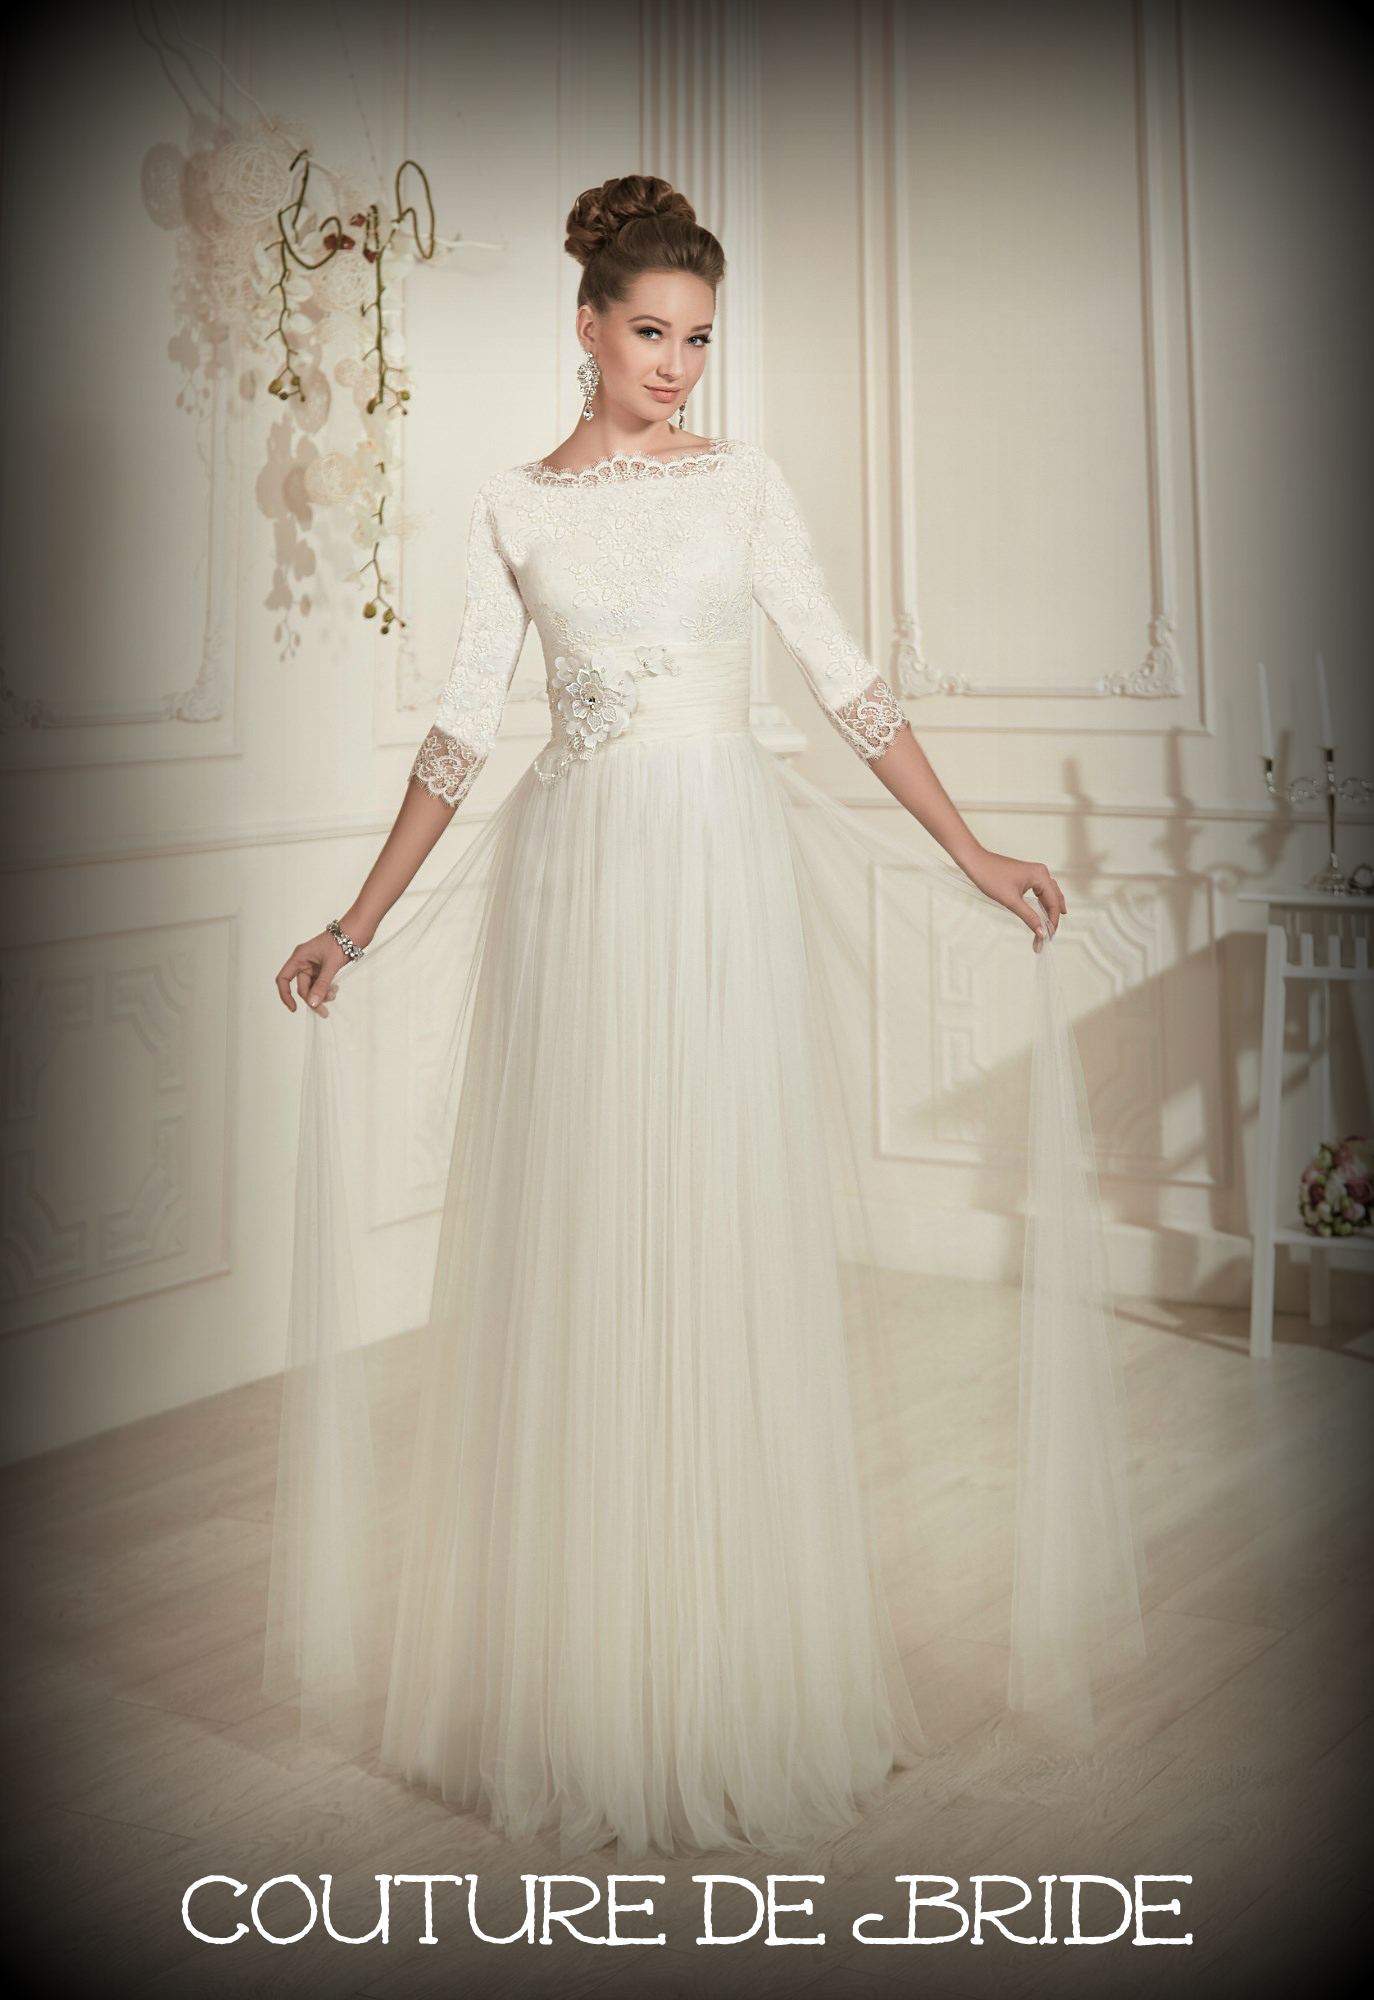 Couture De Bride Photo 6